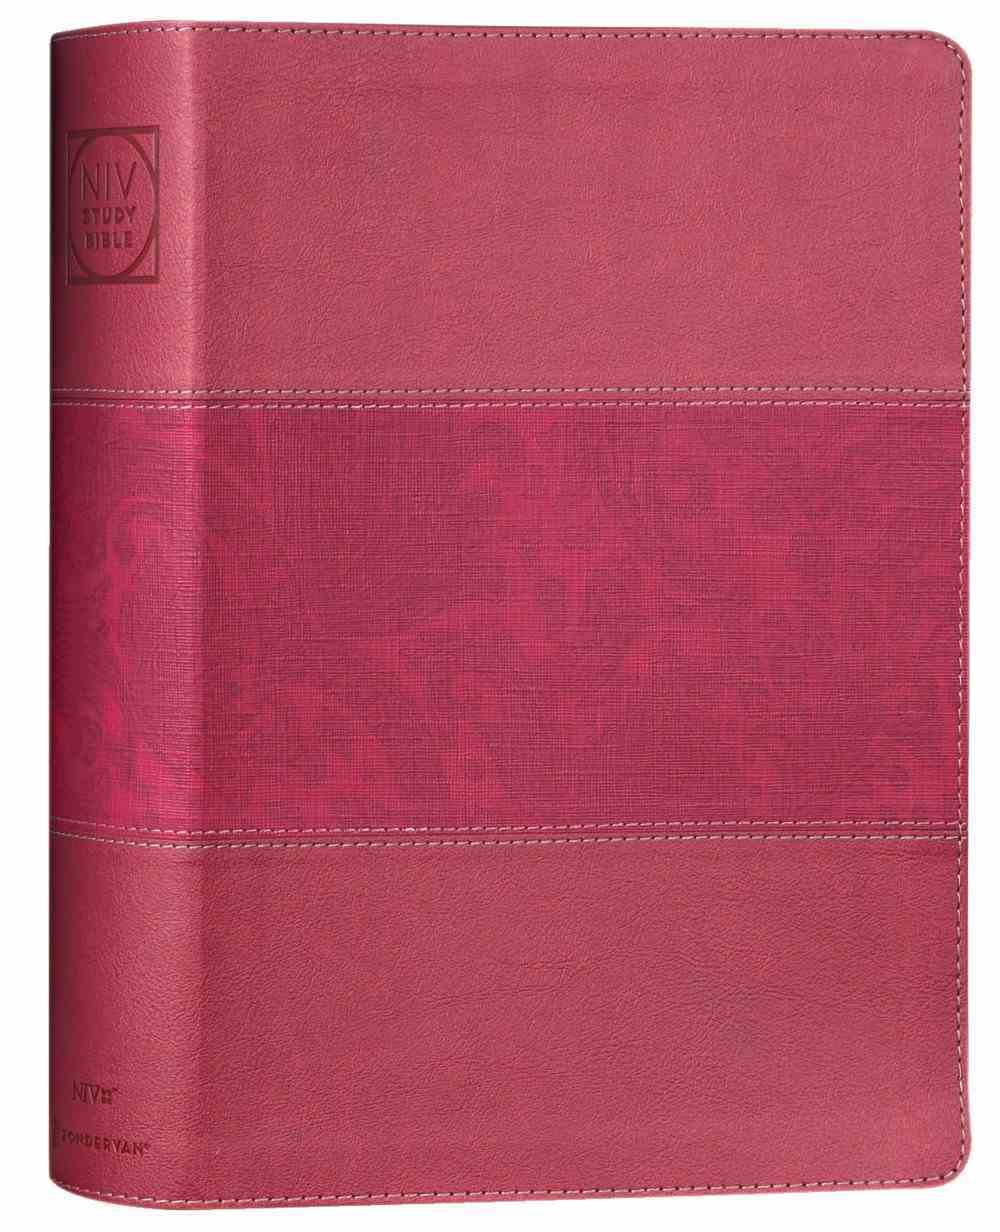 NIV Study Bible Large Print Burgundy (Red Letter Edition) Fully Revised Edition (2020) Premium Imitation Leather